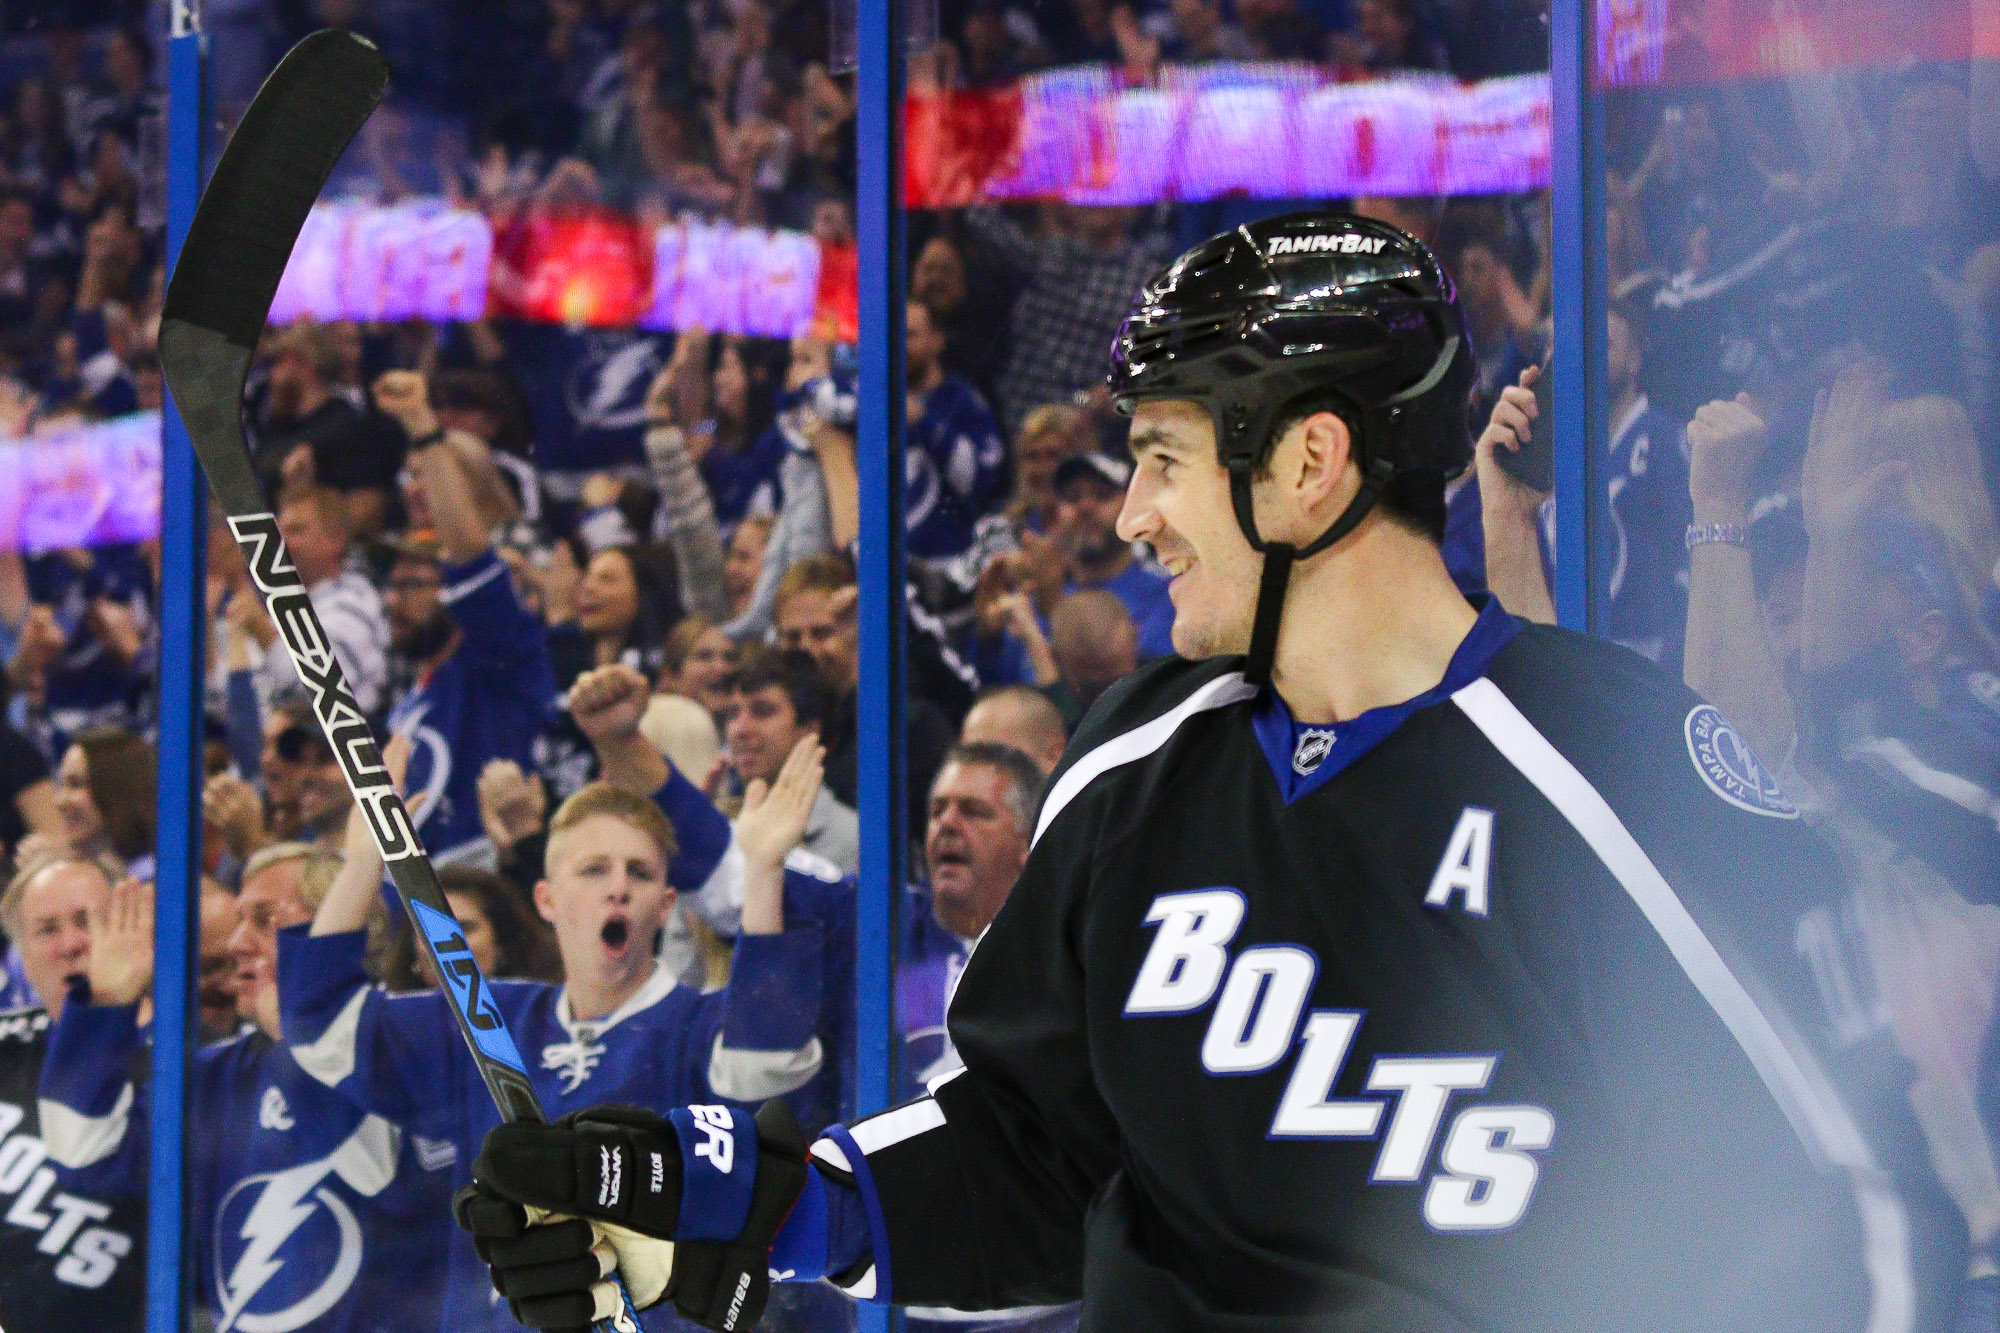 Boyle has become a dependable scorer for Bolts./ANDREW J. KRAMER